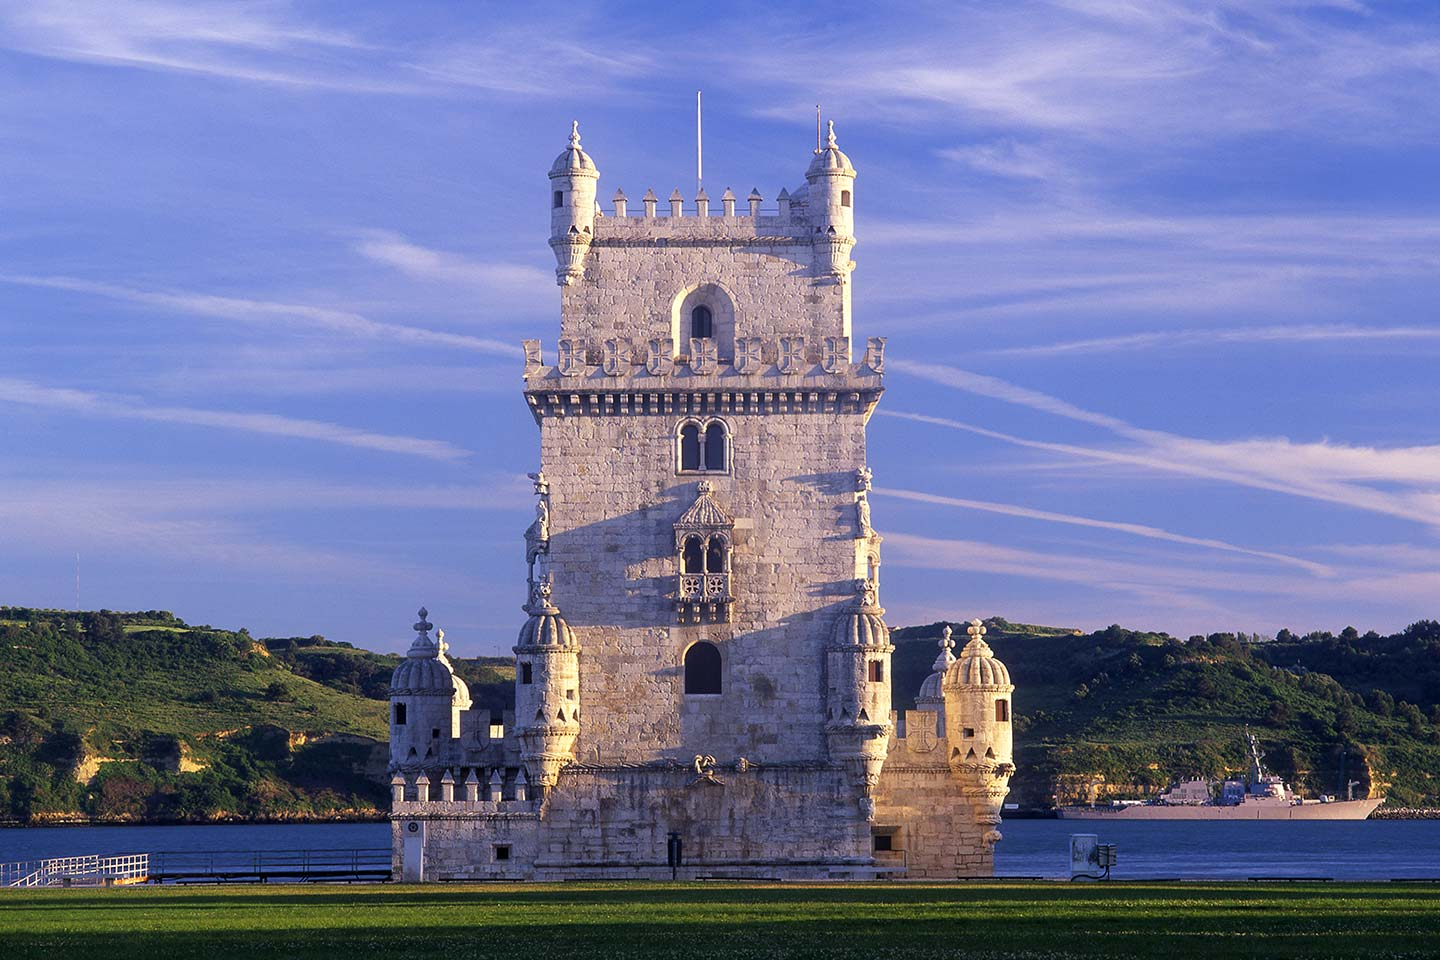 Image of the Belem Tower, Lisbon